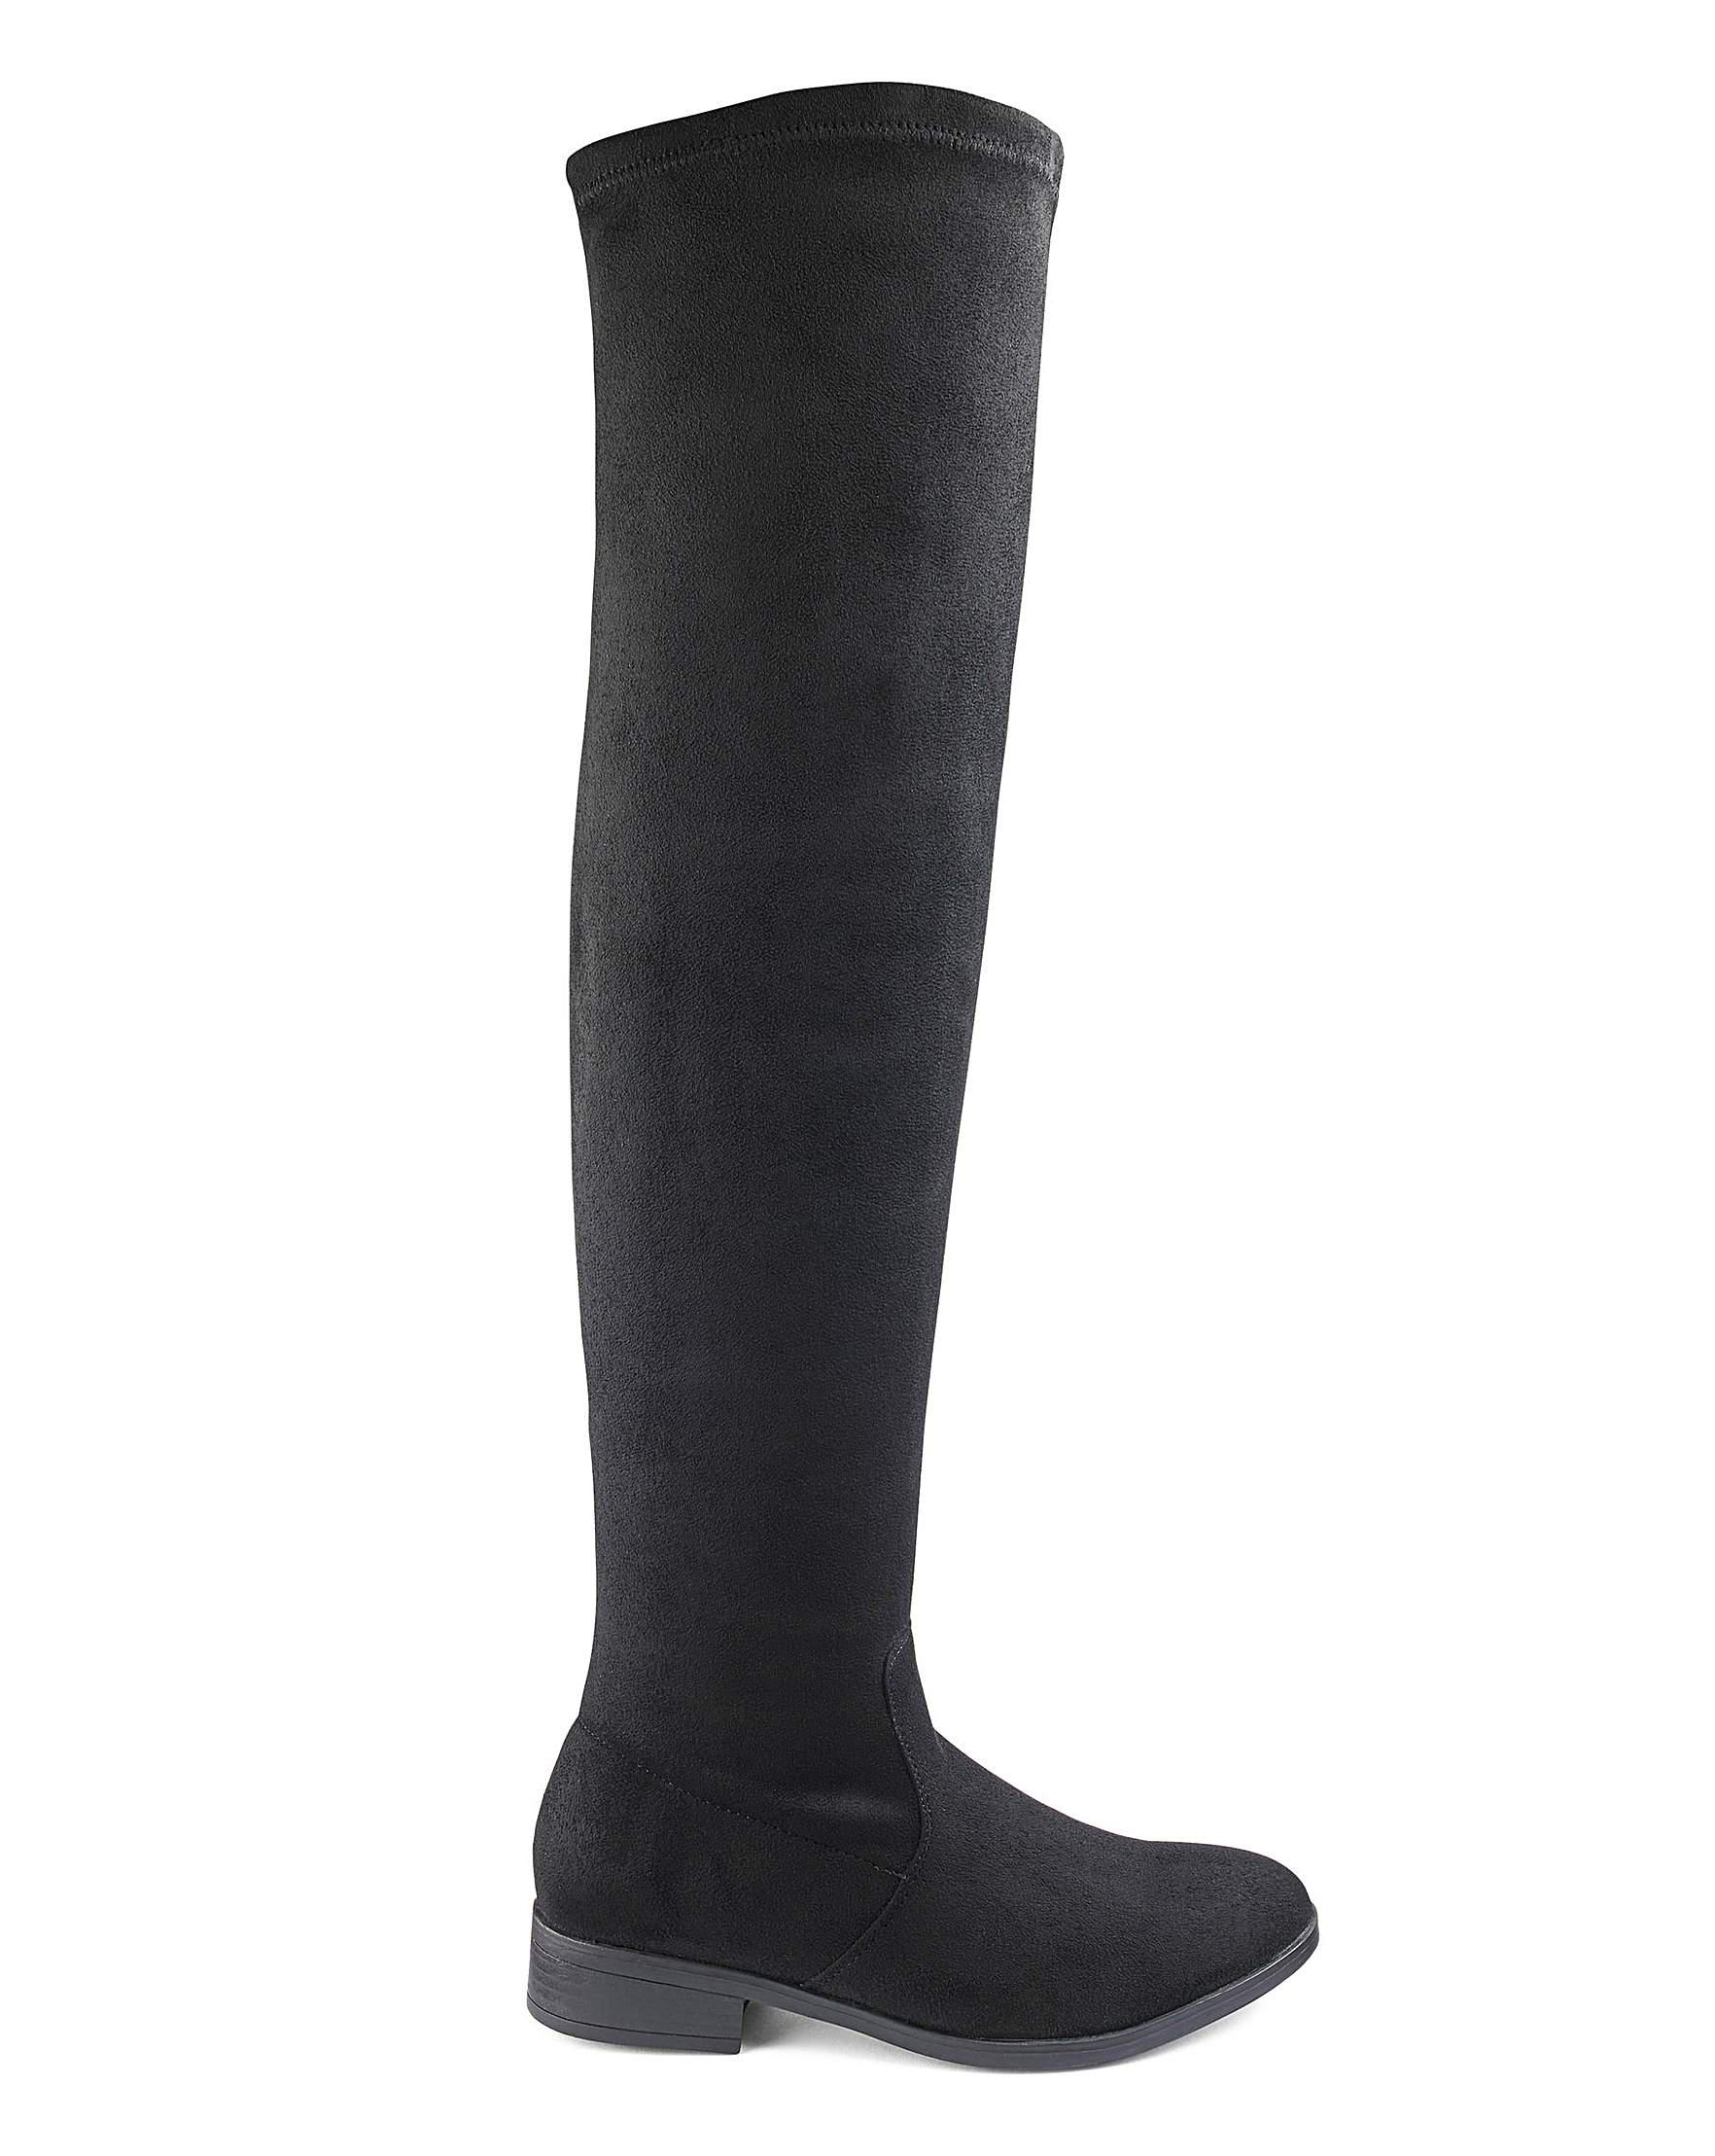 Curvy Wide Simply Fit Lyst Boots Be Black In Sienna Extra Super UIUHFgqx